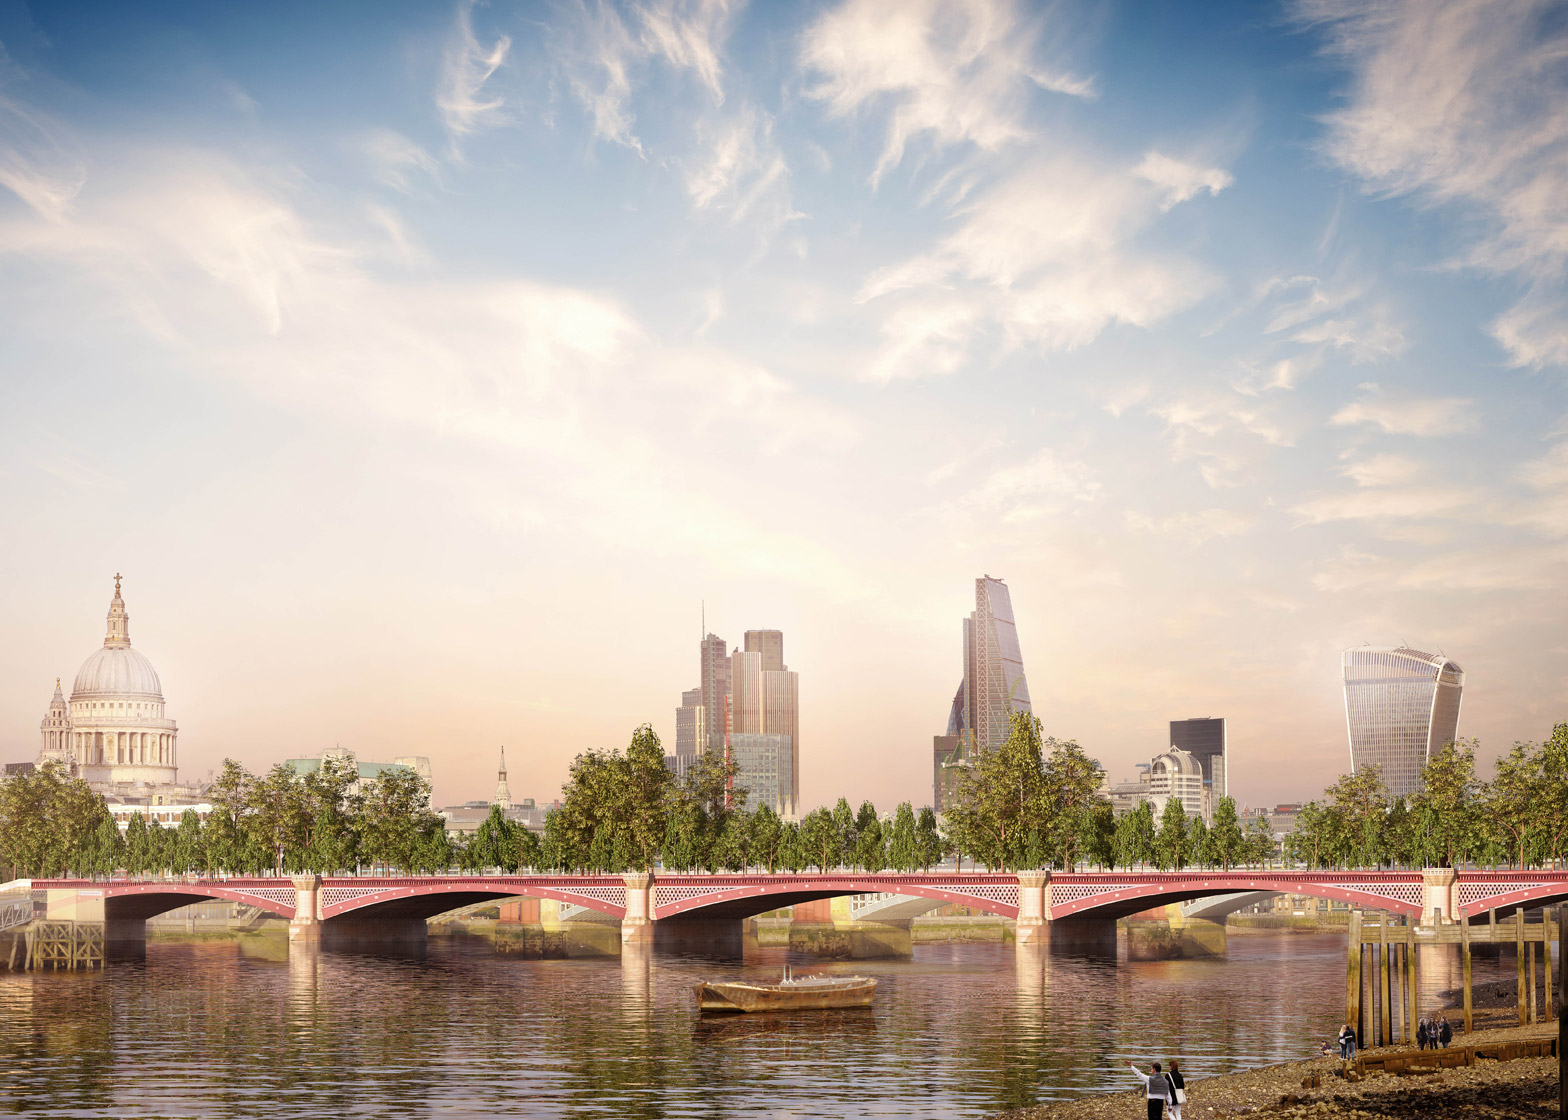 Allies and Morrison proposes alternative Garden Bridge at existing Blackfriars crossing